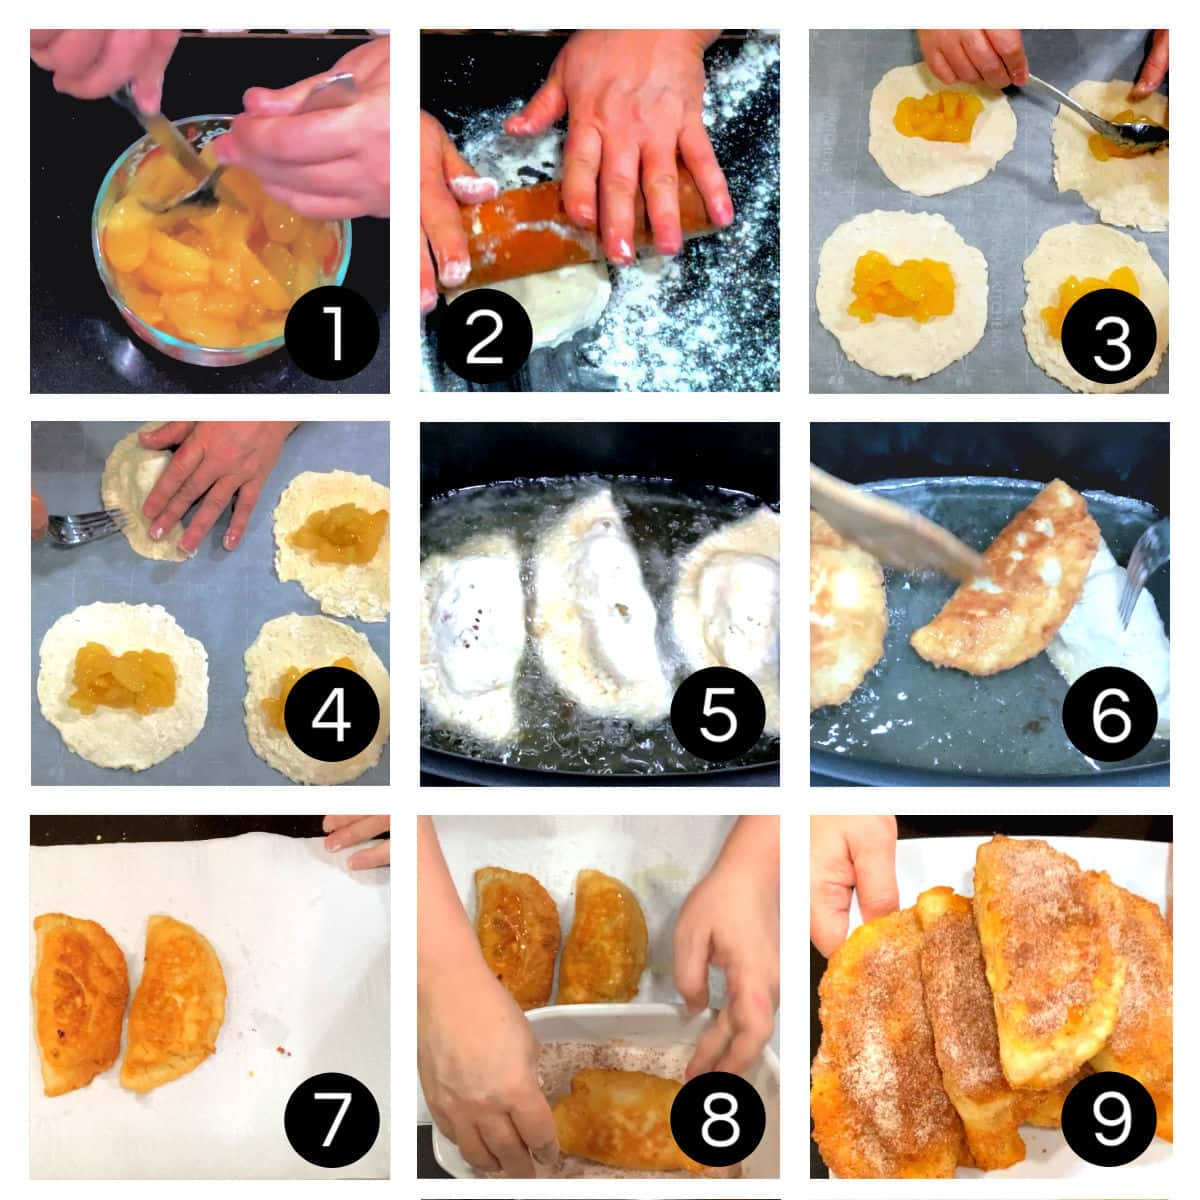 Step by step images showing how to make southern fried pies.